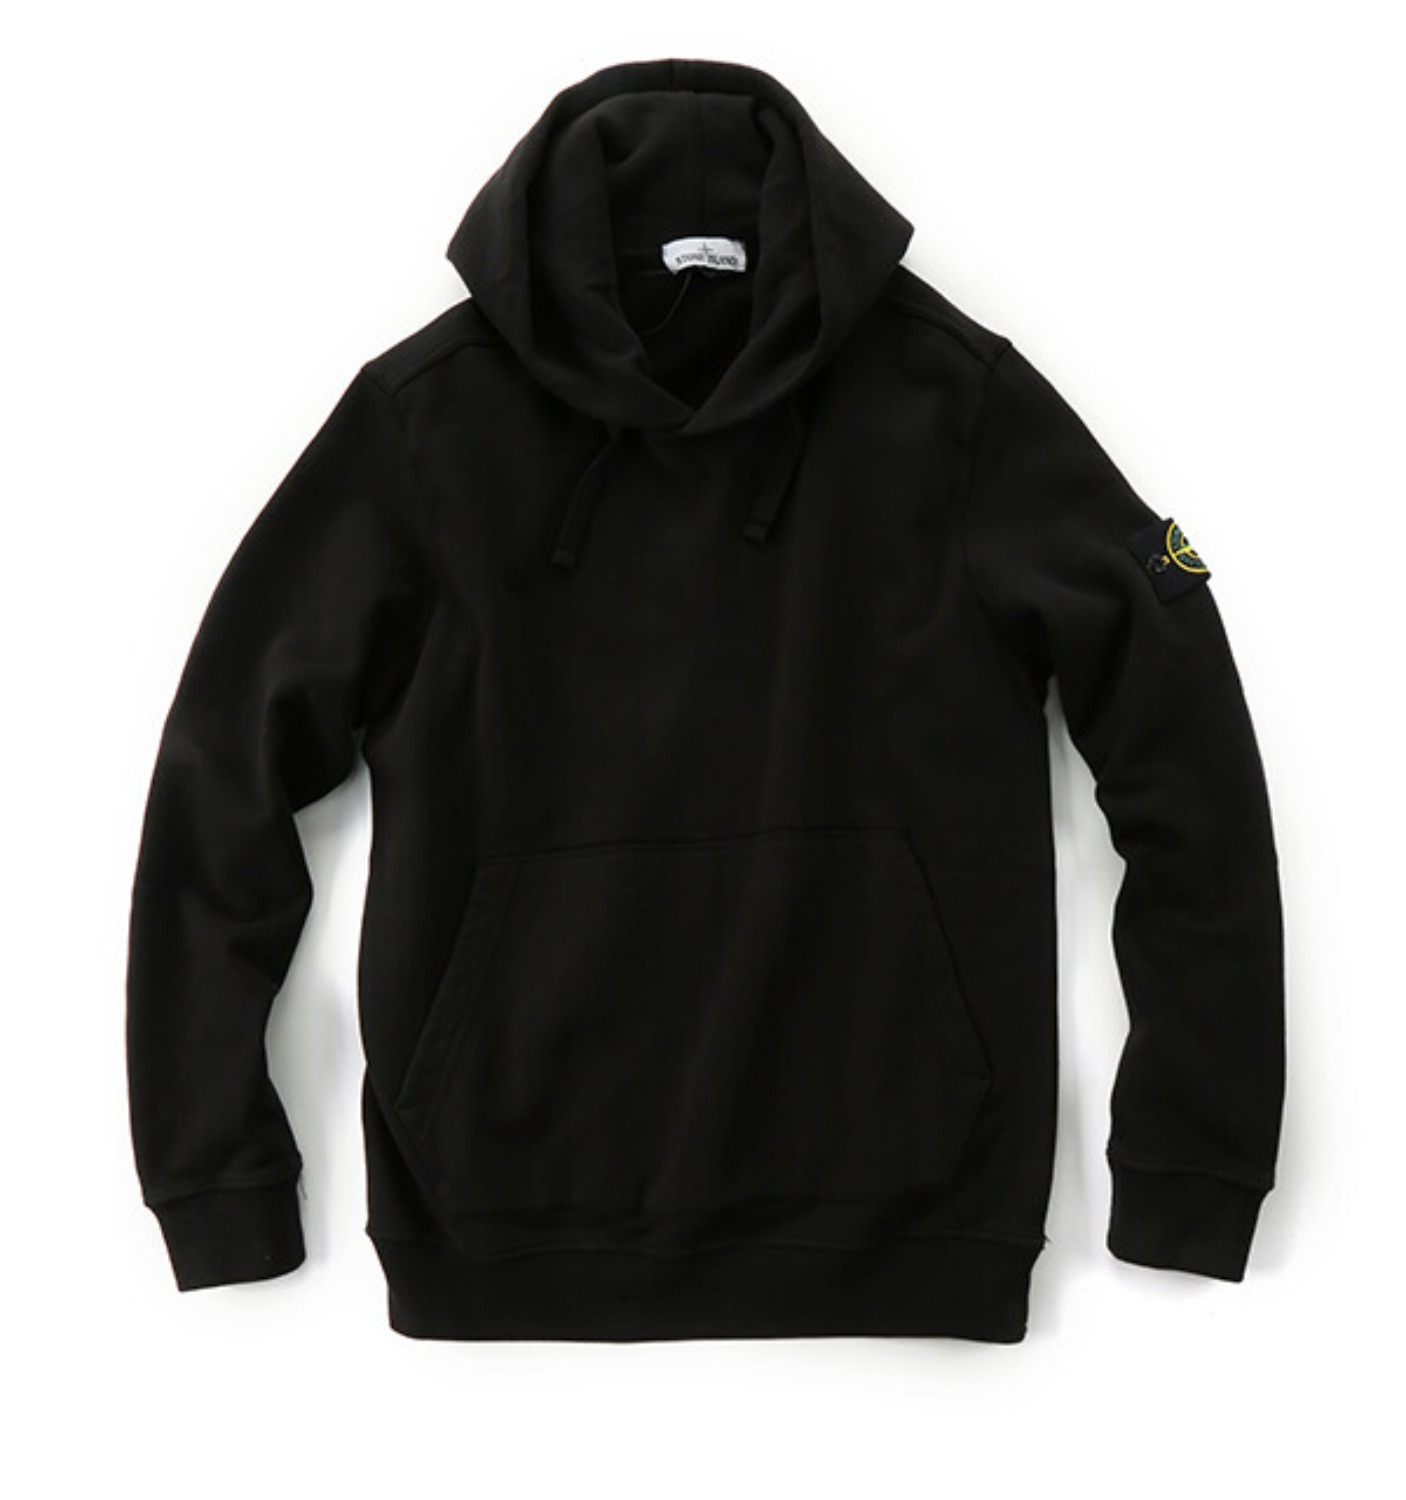 BRUSHED COTTON FLEECE GARMENT DYED HOODED SWEATSHIRT BLACK